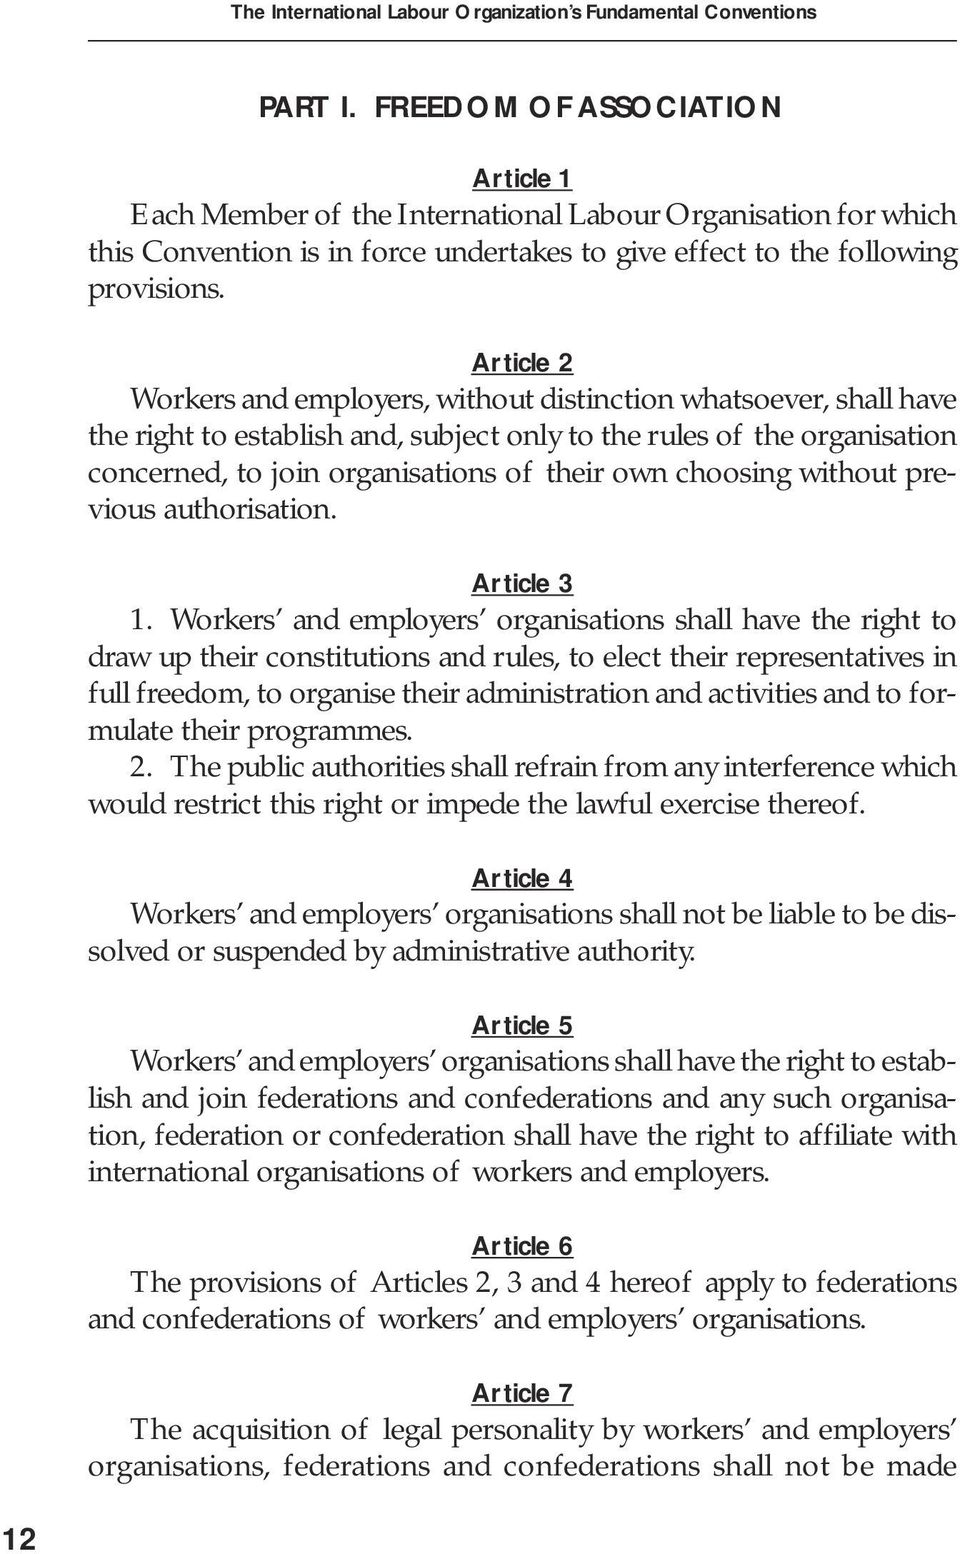 Article 2 Workers and employers, without distinction whatsoever, shall have the right to establish and, subject only to the rules of the organisation concerned, to join organisations of their own